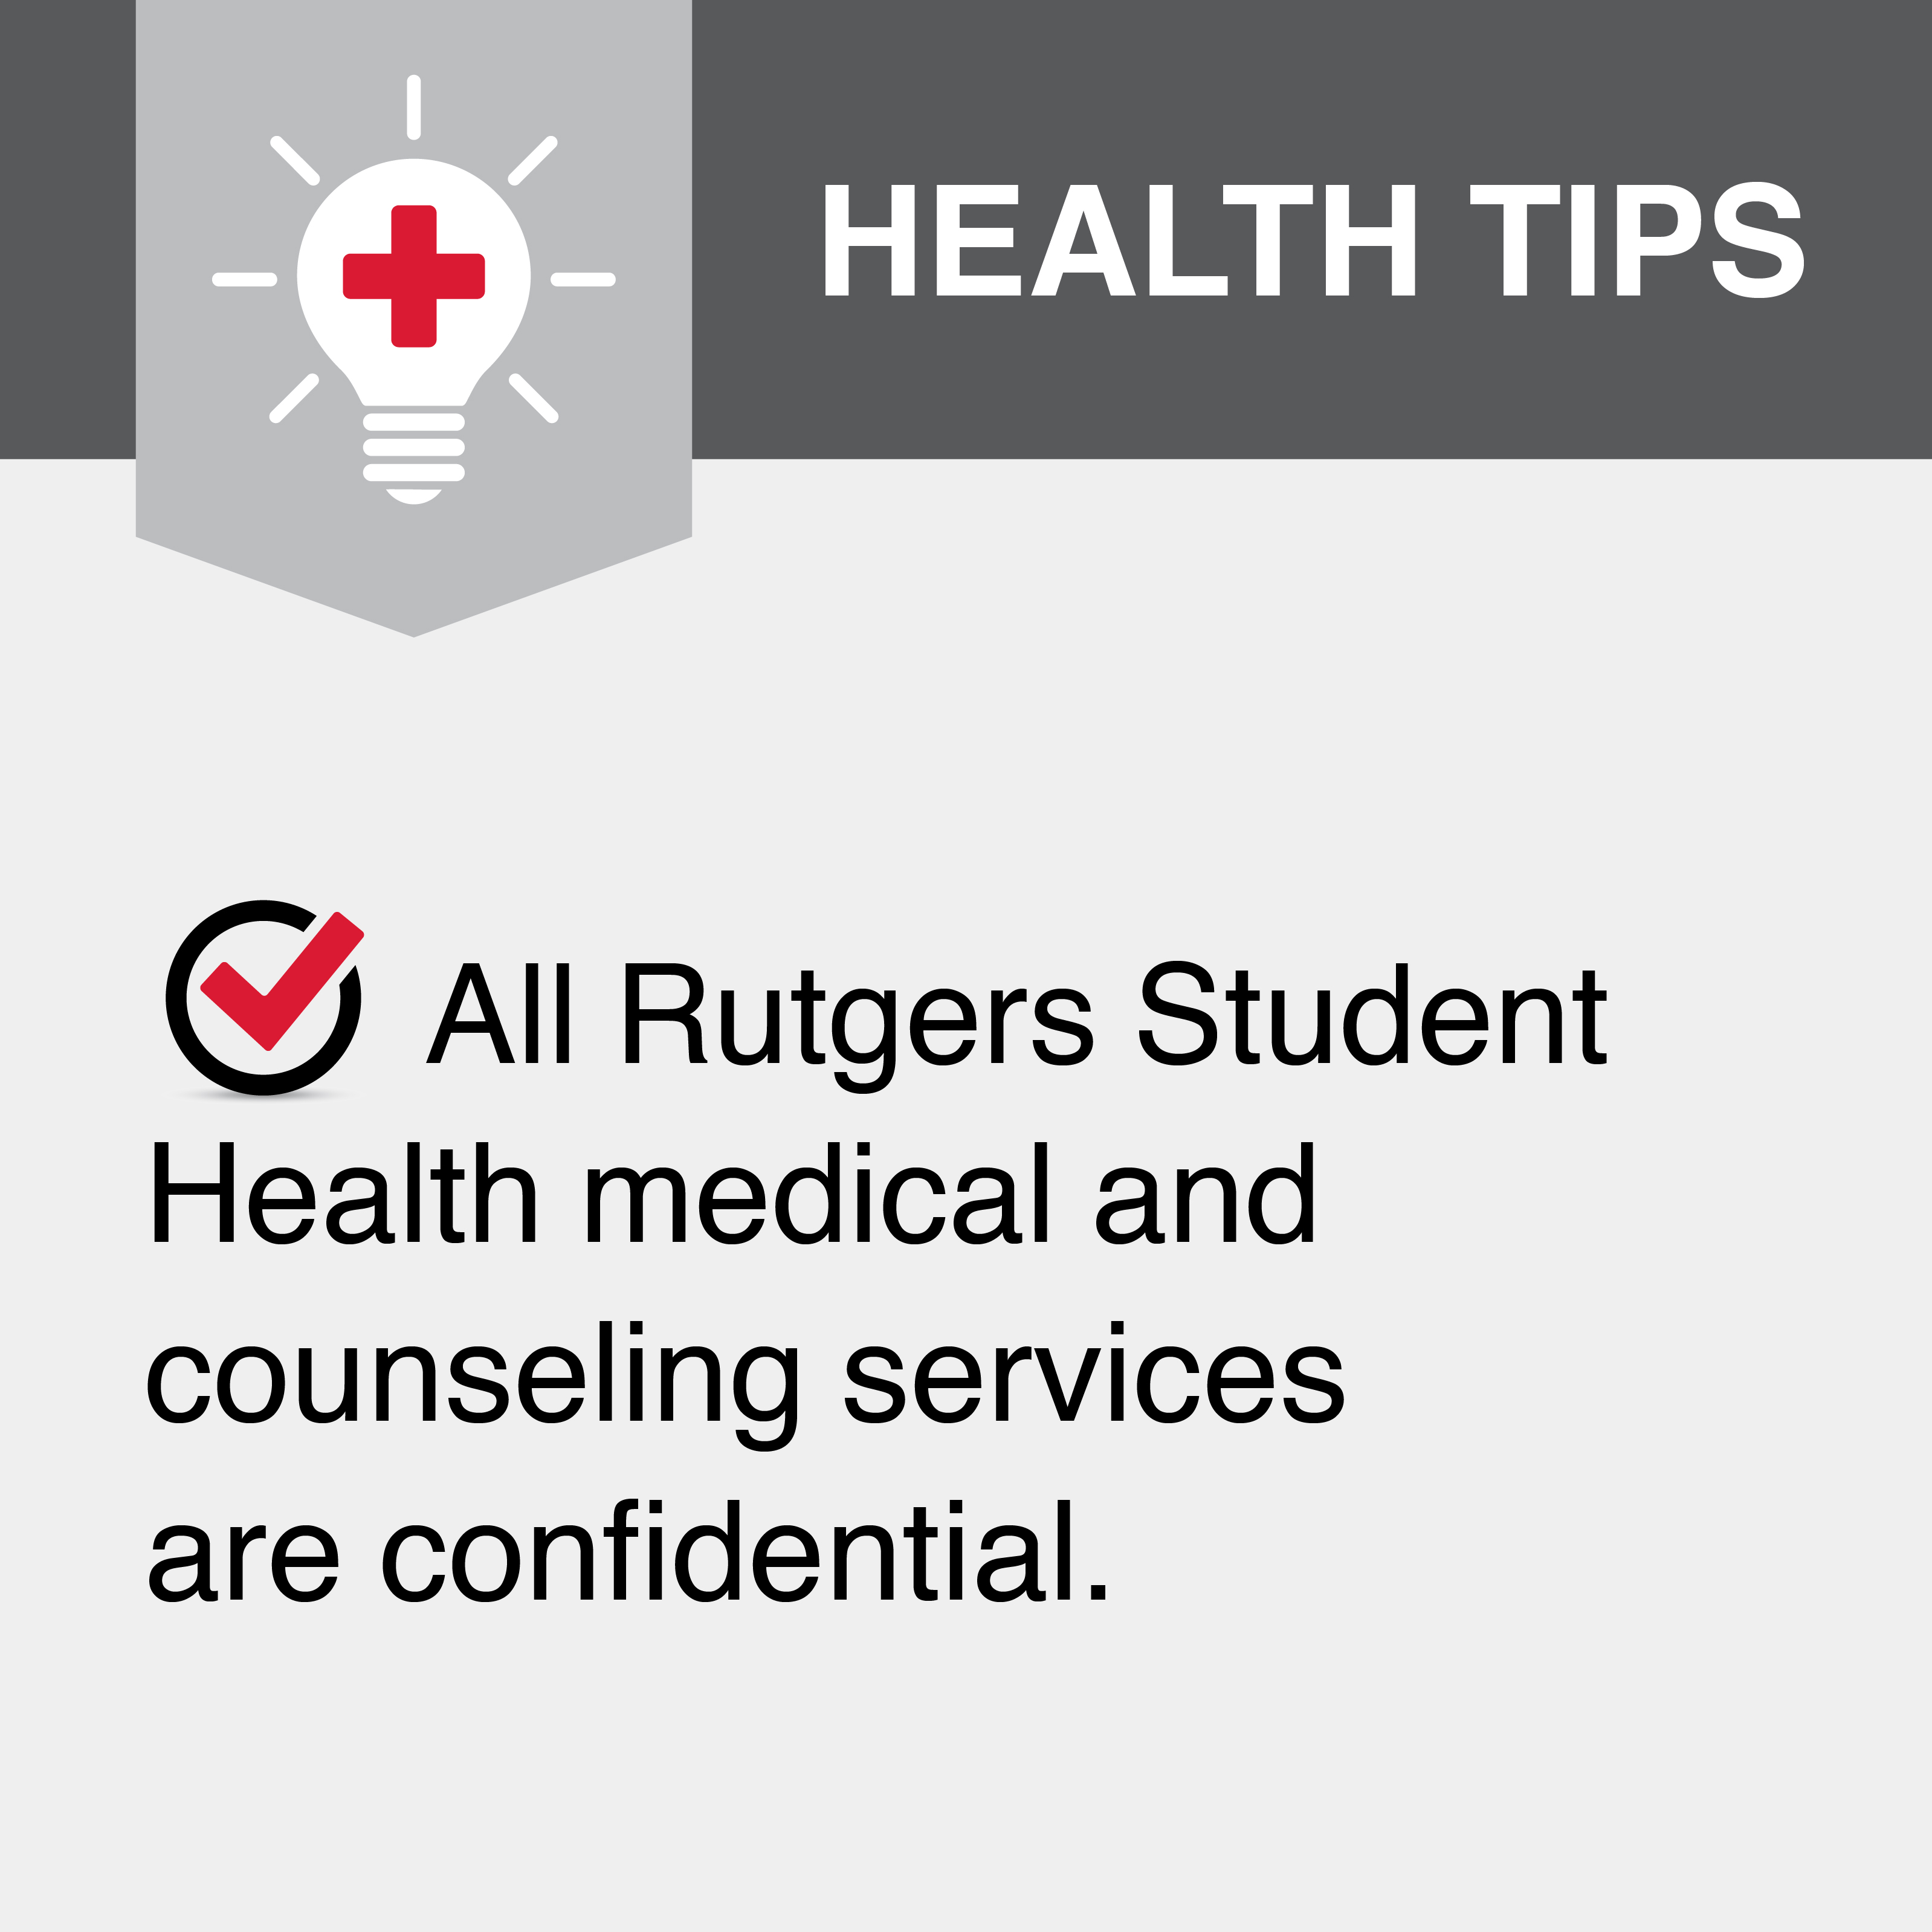 All Rutgers Student Health medical and counseling services are confidential.